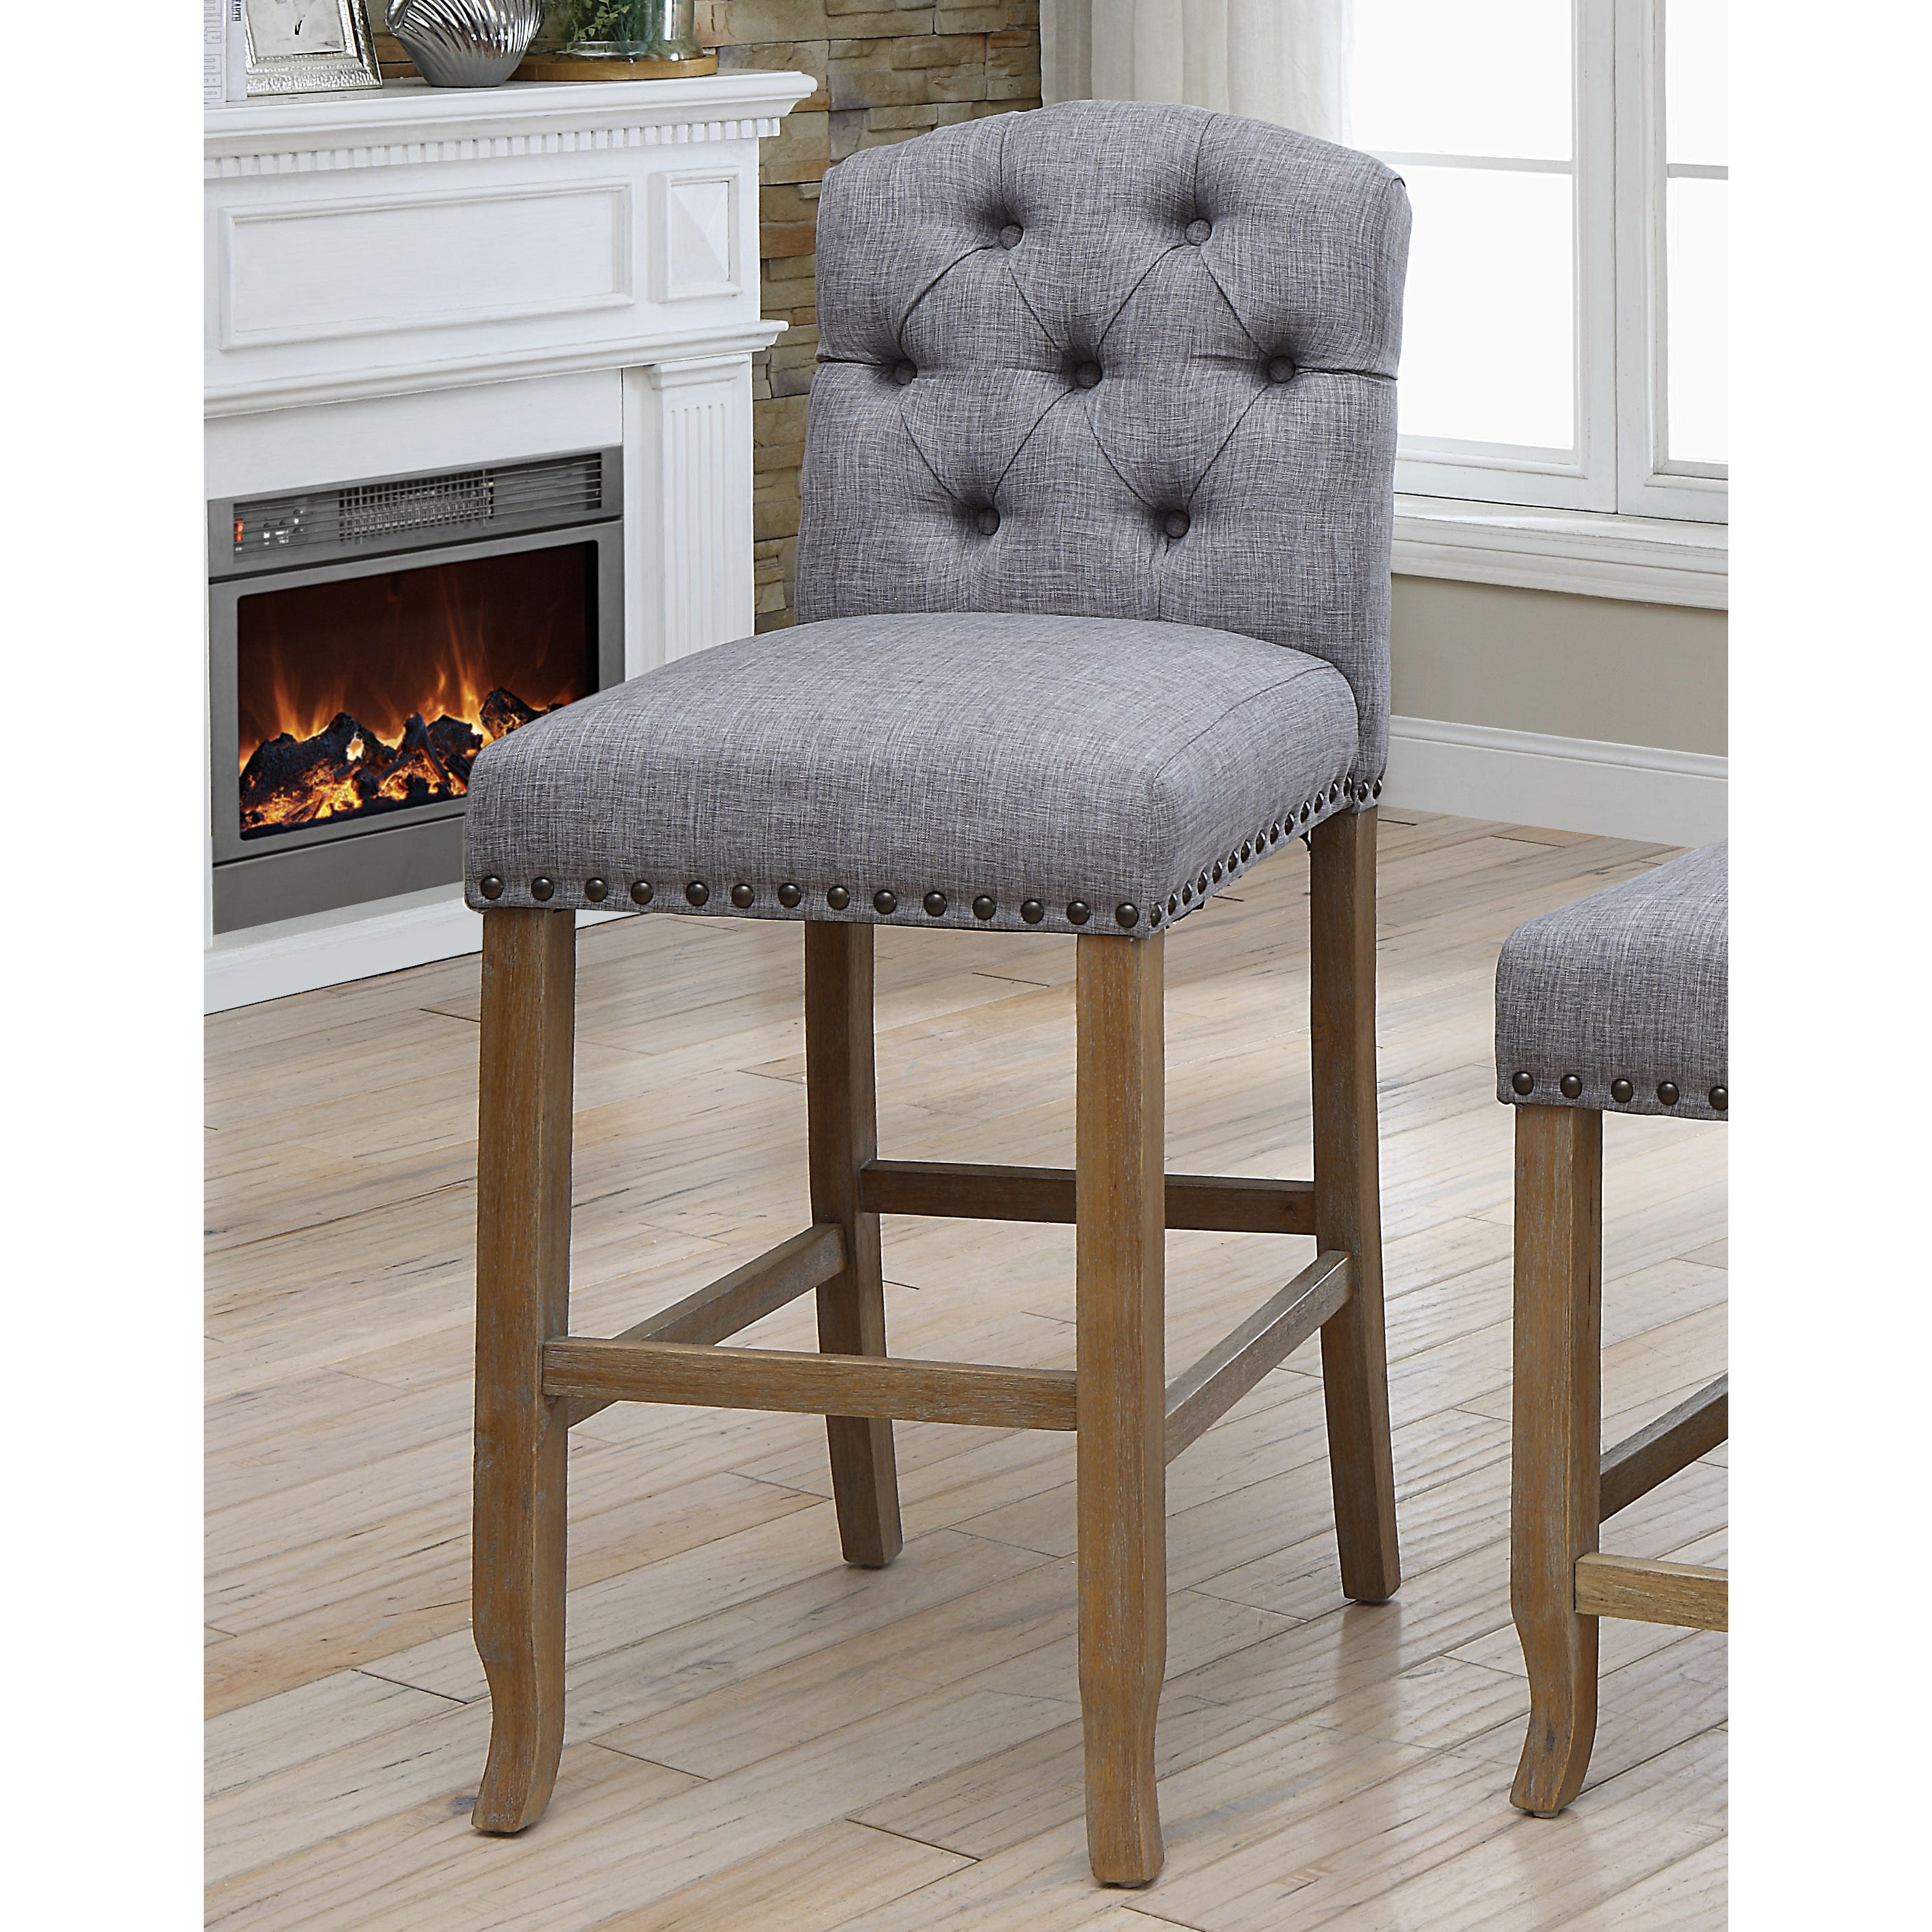 Lovely Furniture Of America Matheson Rustic Tufted Bar Chairs (Set Of 2)   Free  Shipping Today   Overstock   26380090